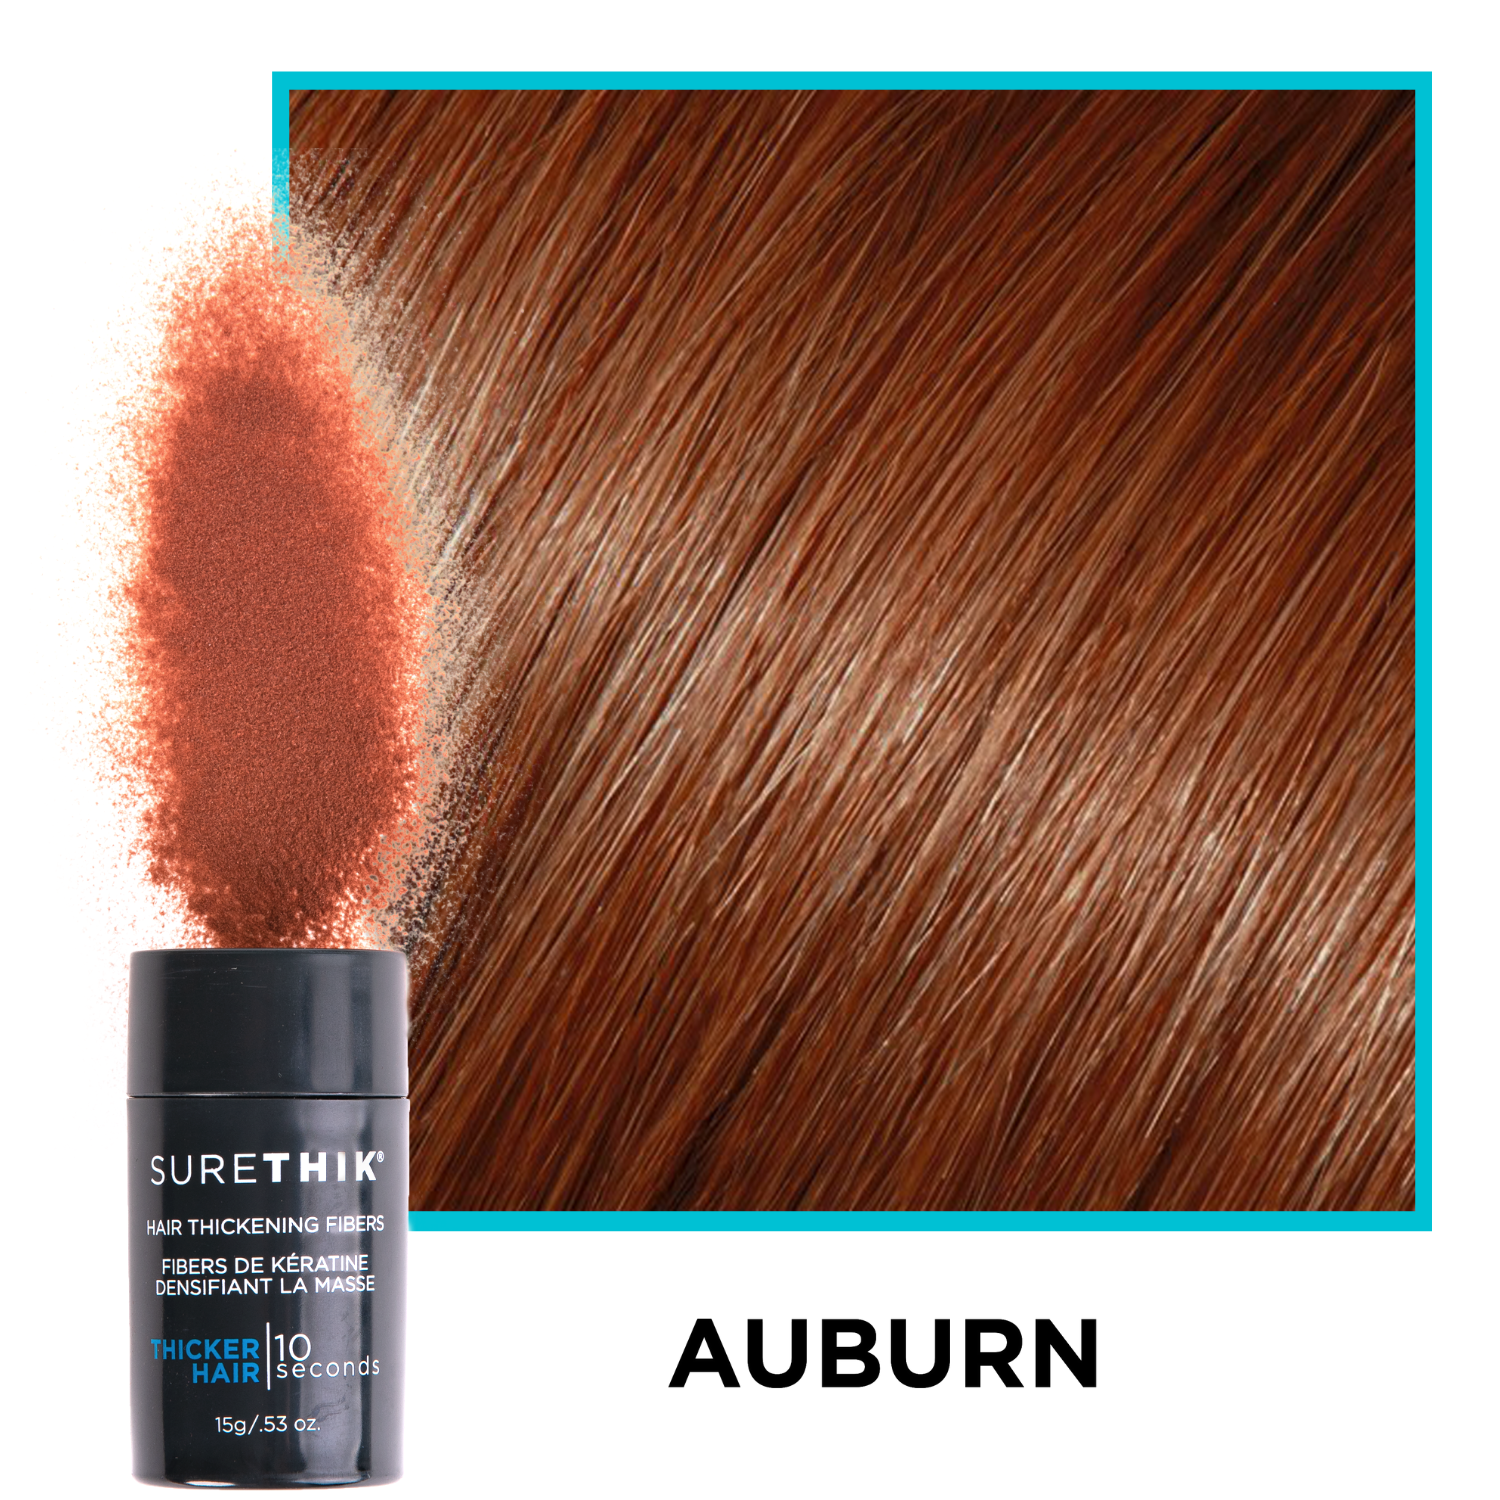 SureThik® Hair Thickening Fibers (15g / 0.53oz) - 12% Savings